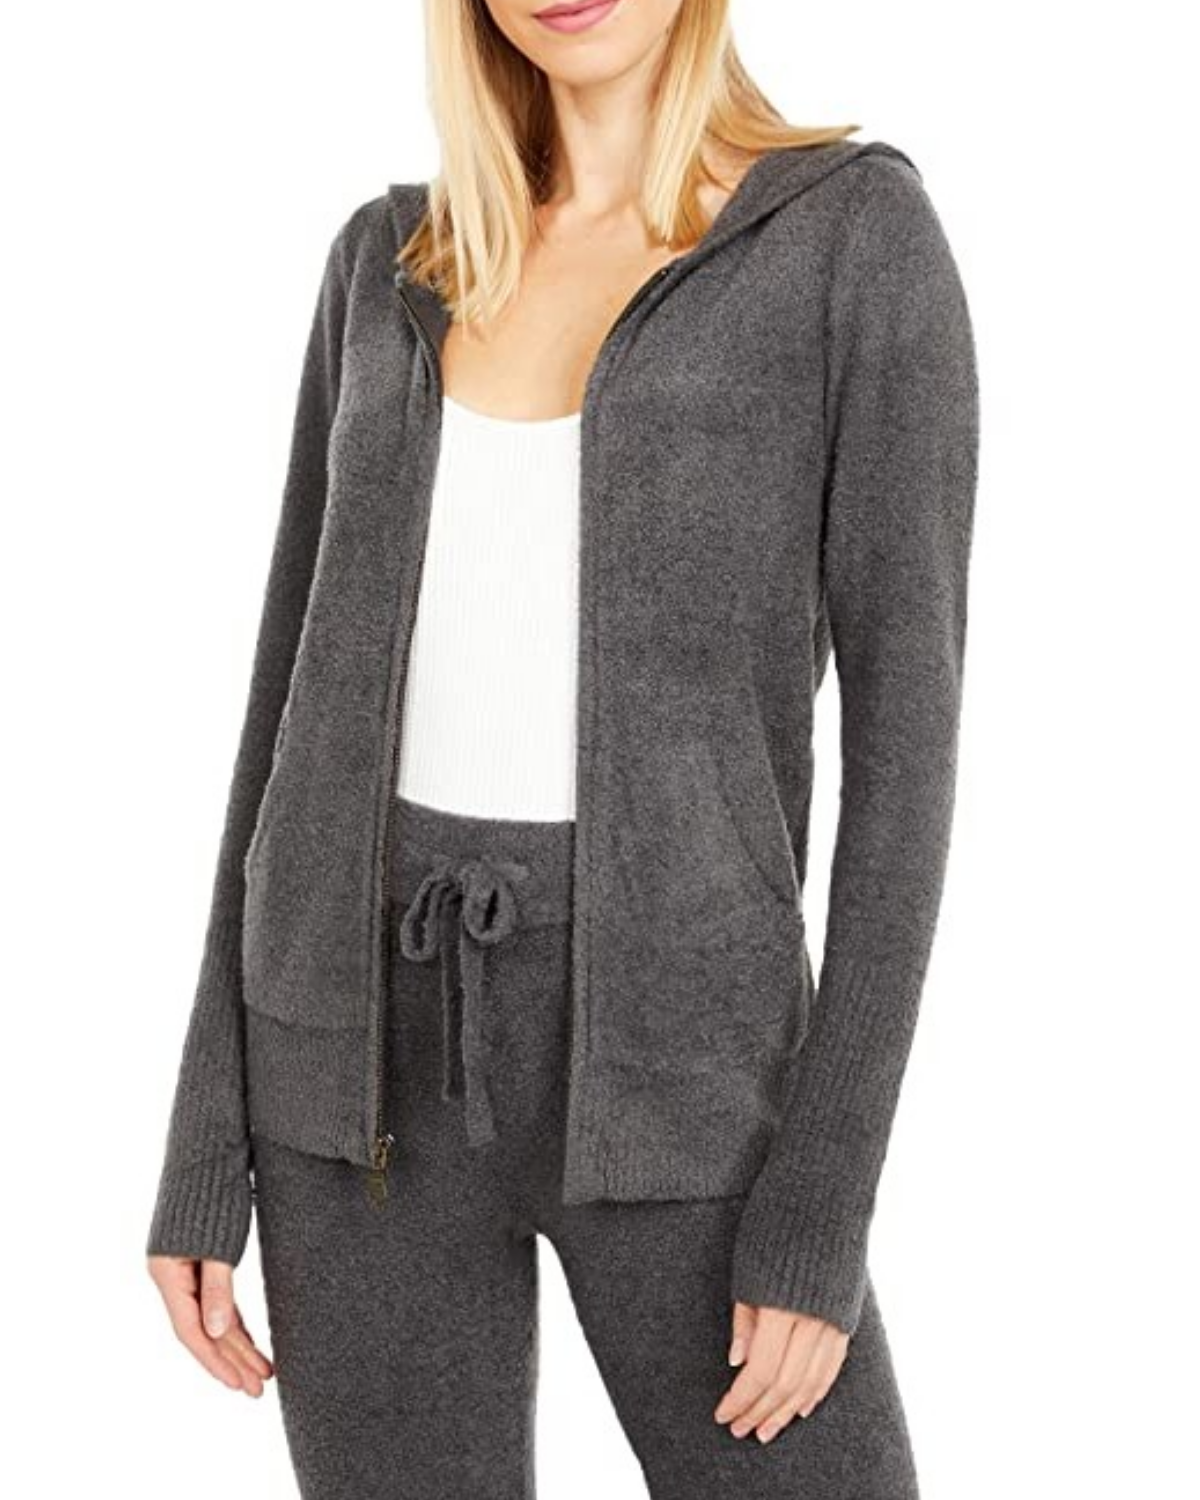 CozyChic Lite Women's Zip Up Hoodie - Carbon